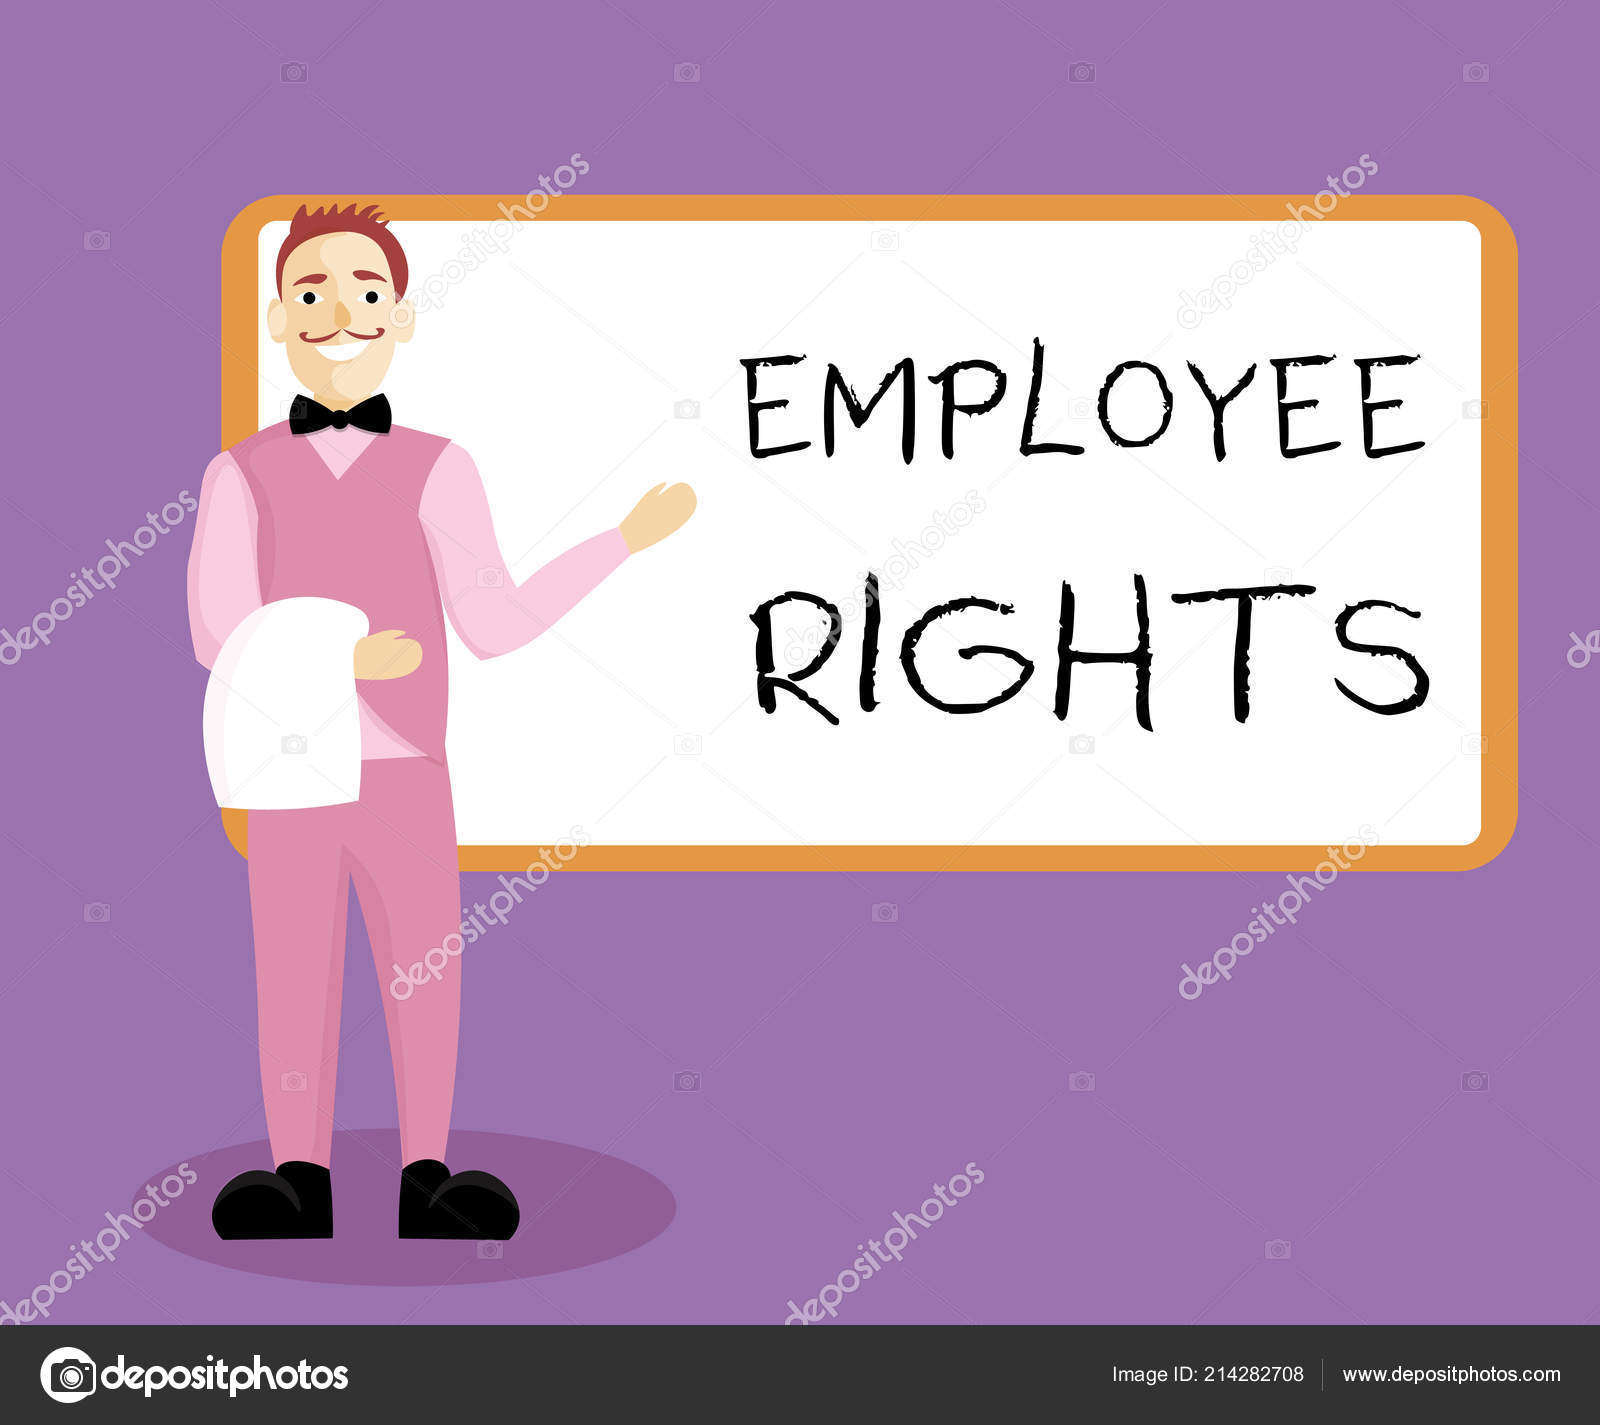 employee privacy rights in the workplace Employees typically must relinquish some of their privacy while at the workplace, but how much they must do so can be a contentious issue the debate rages on as to whether it is moral, ethical and legal for employers to monitor the actions of their employees.